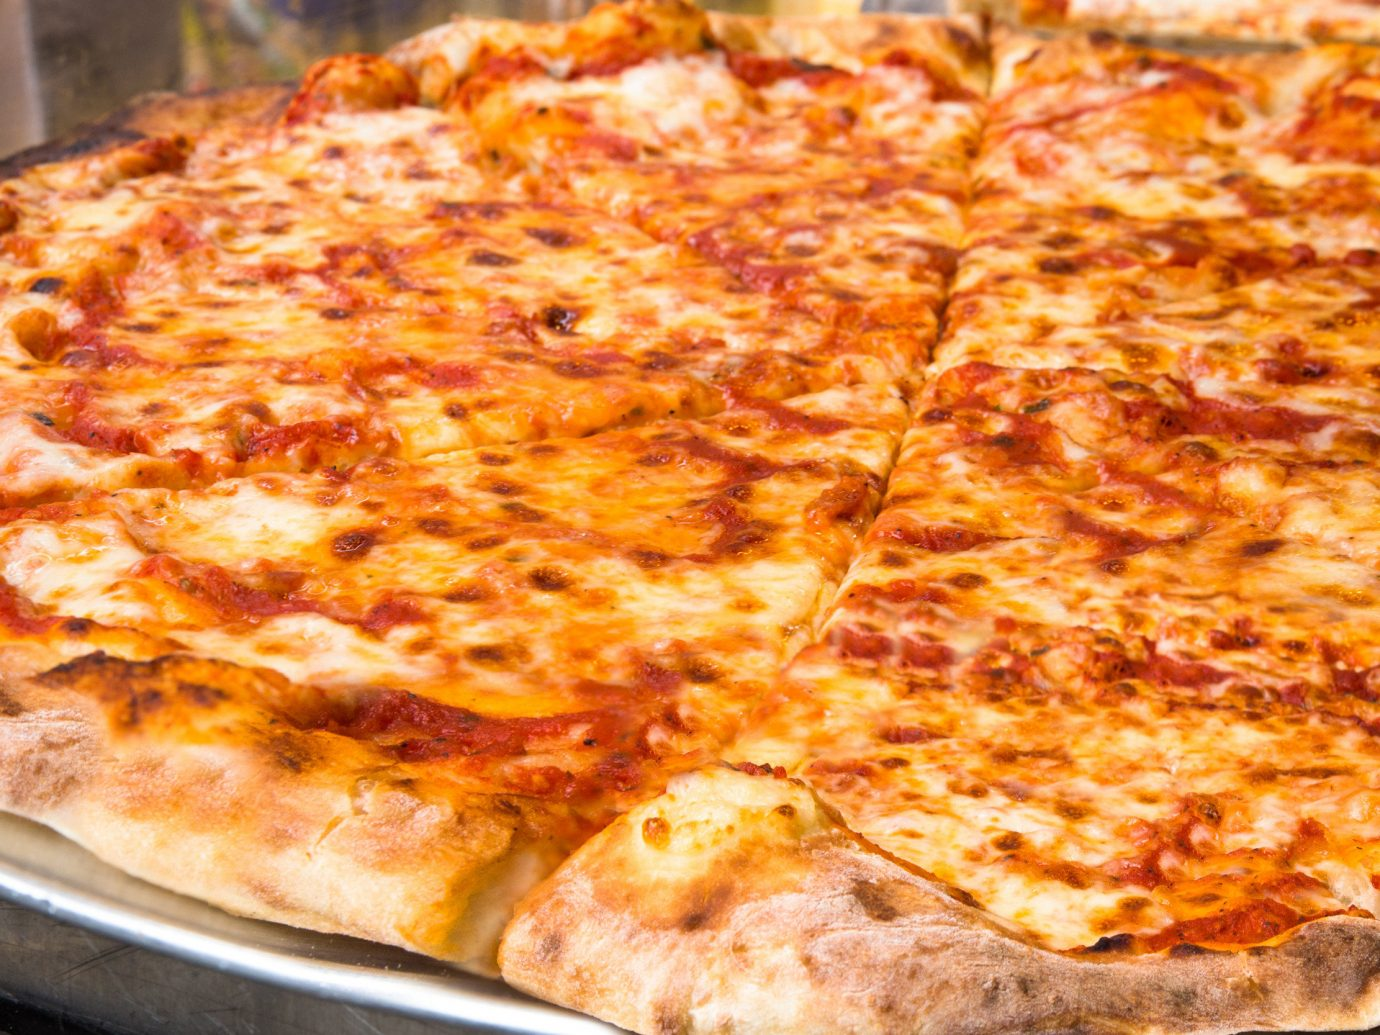 Brooklyn City Food + Drink NYC pizza food dish sitting pizza cheese indoor cuisine cheese california style pizza italian food european food pan tarte flambée sicilian pizza zwiebelkuchen junk food american food turkish food pizza stone recipe pepperoni baked sliced cooked fresh silver several